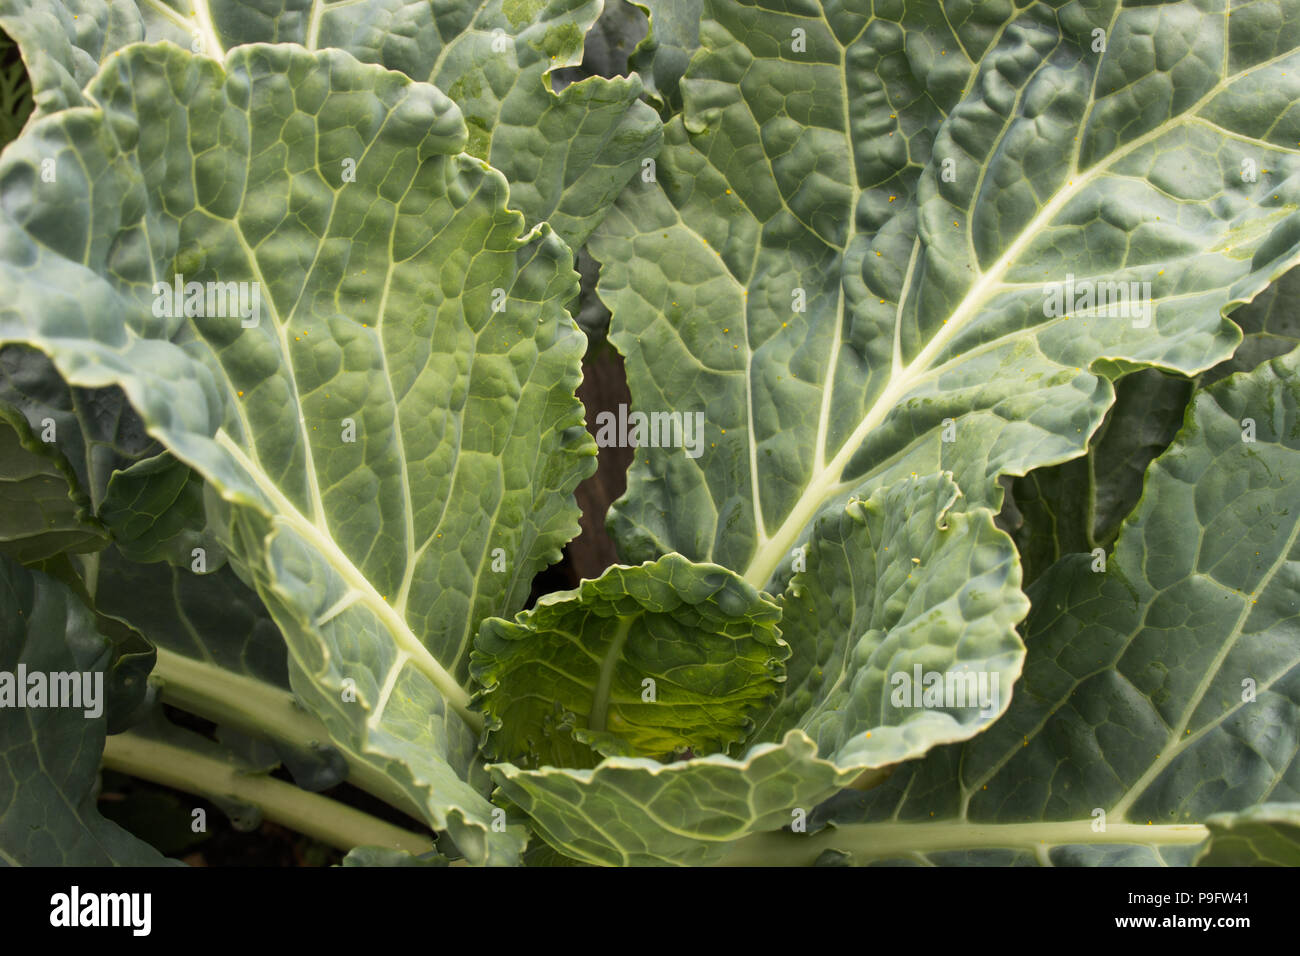 Big, healthy collard greens growing organically in a raised bed garden, speckled with pollen